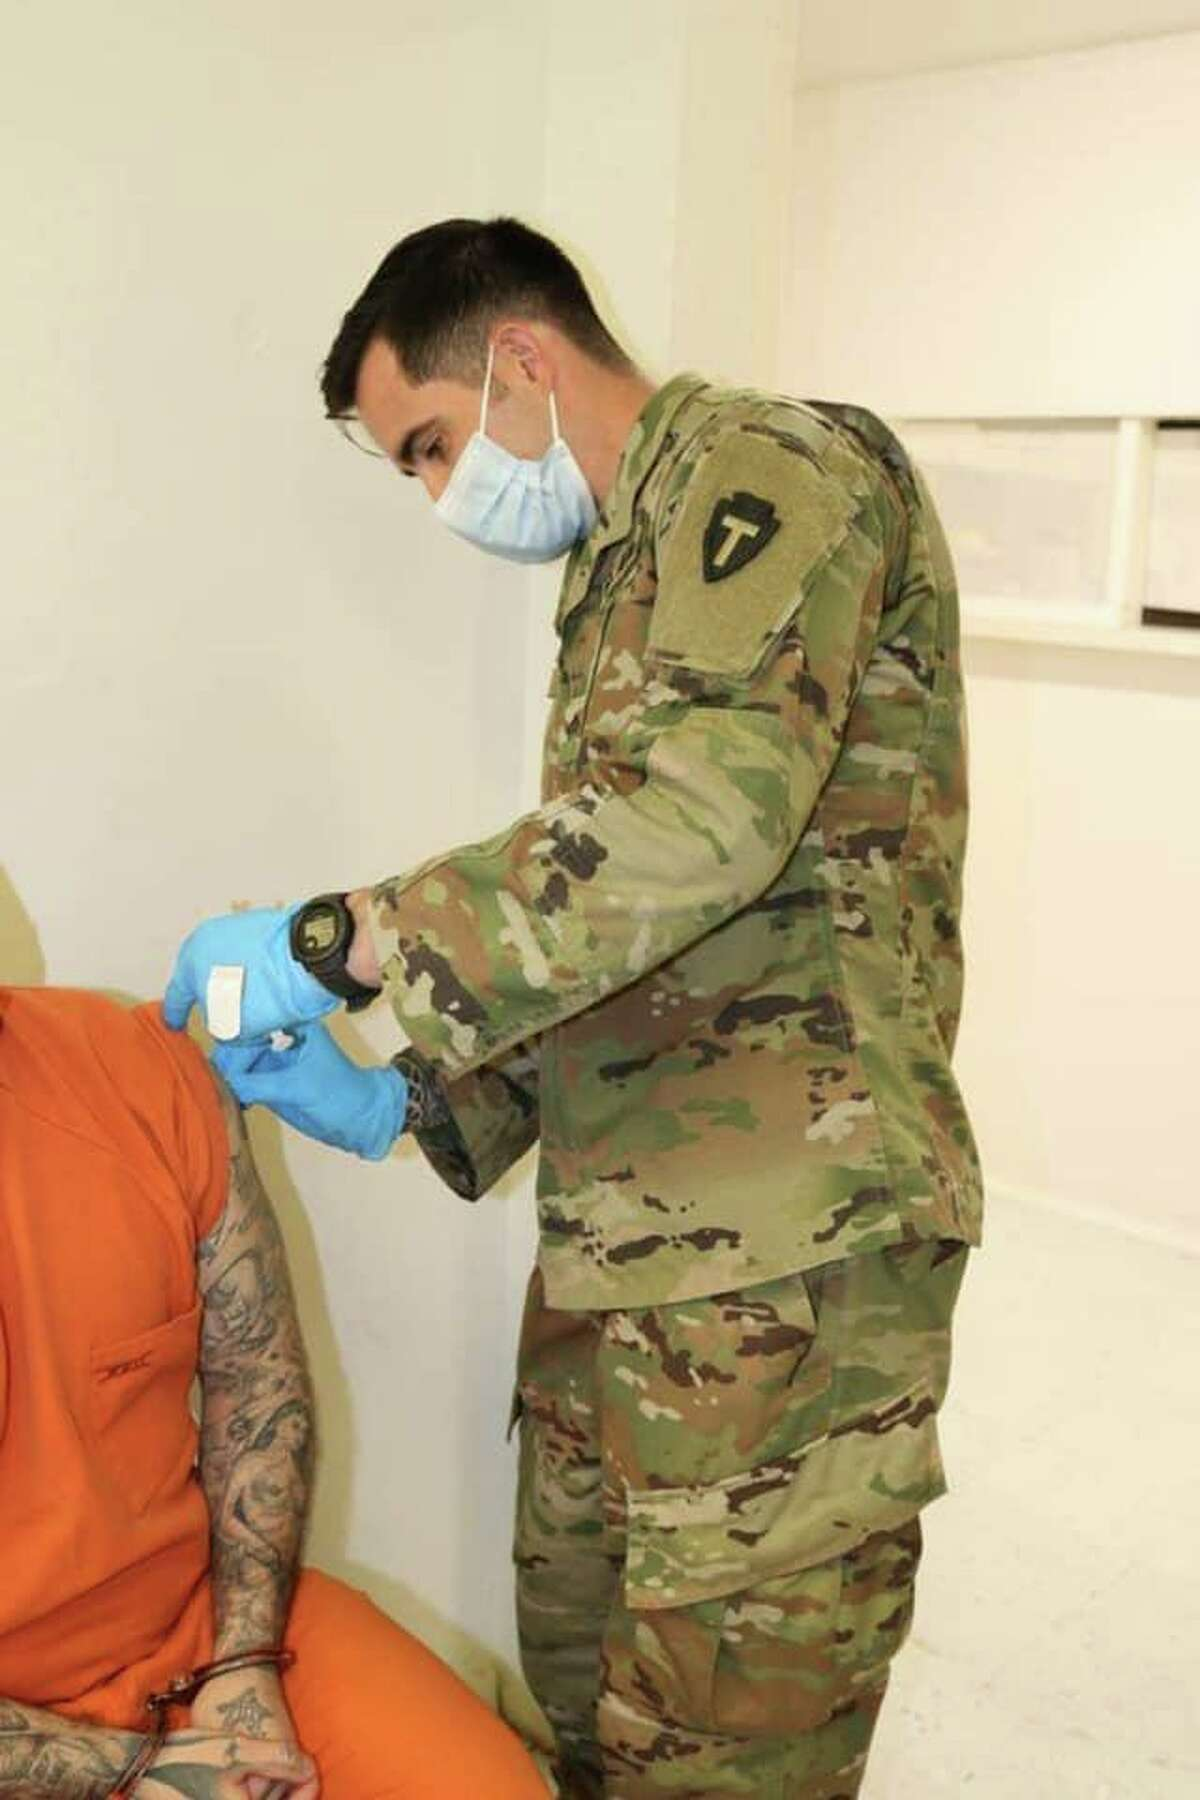 Webb County Jail inmates got their second dose of COVID-19 vaccine.